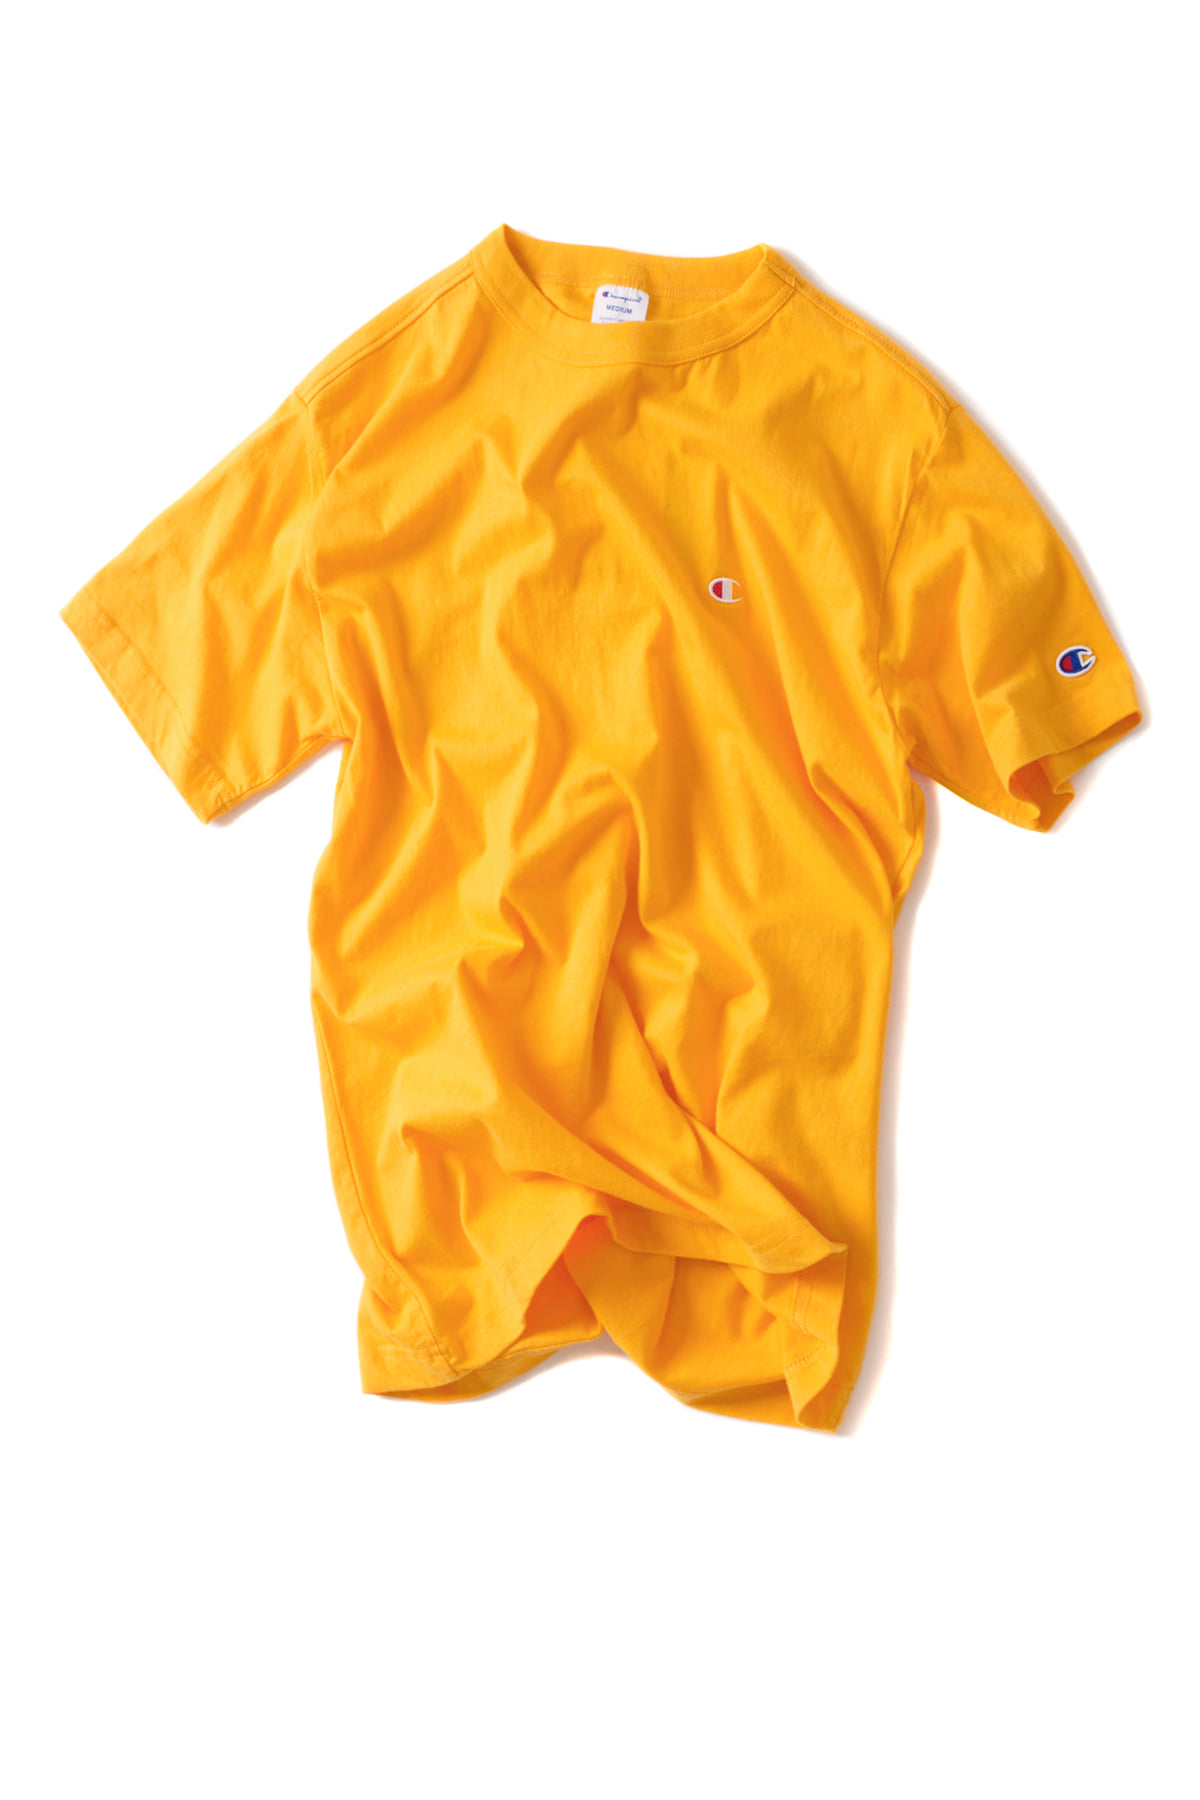 Champion : Basic T-Shirt (Yellow)